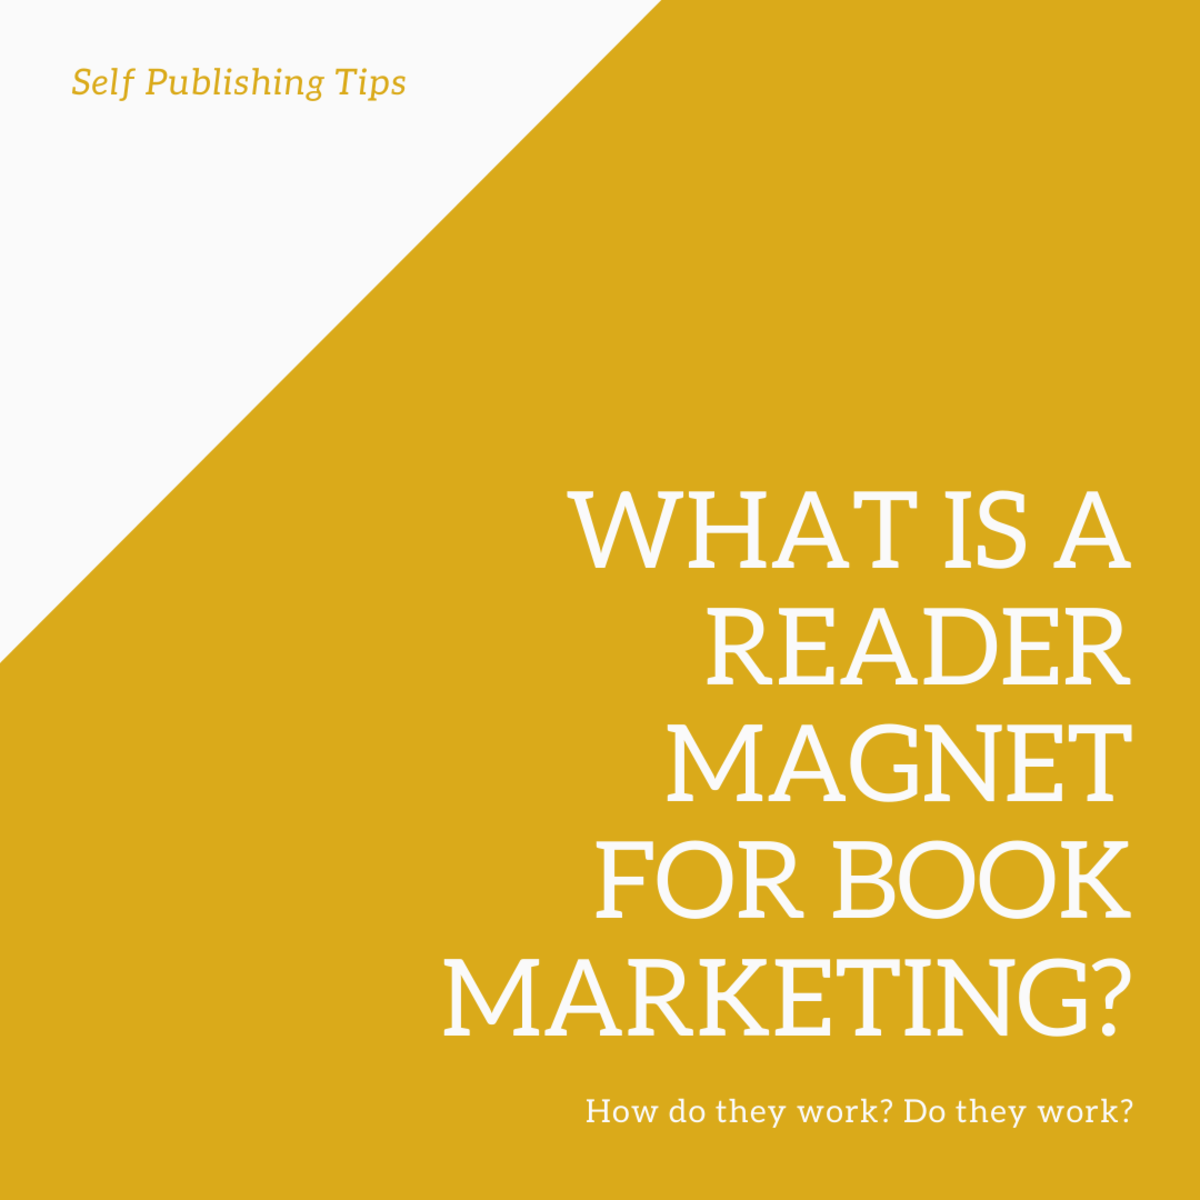 What are reader magnets? How do they work for book marketing? Do they work?